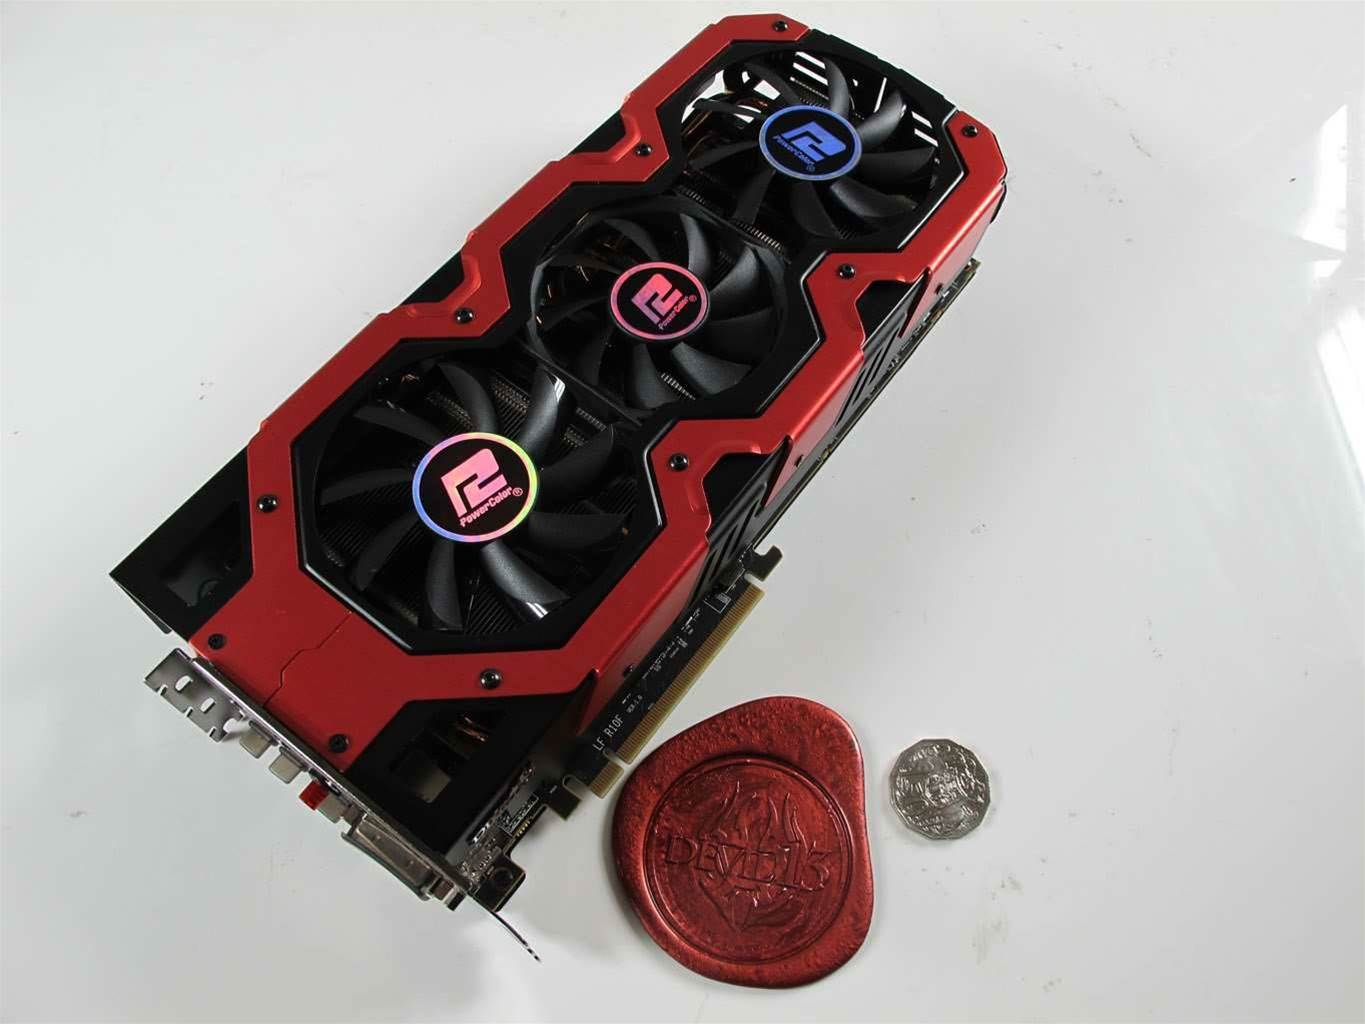 In Pictures: PowerColor DEVIL13 HD7990 6GB GDDR5